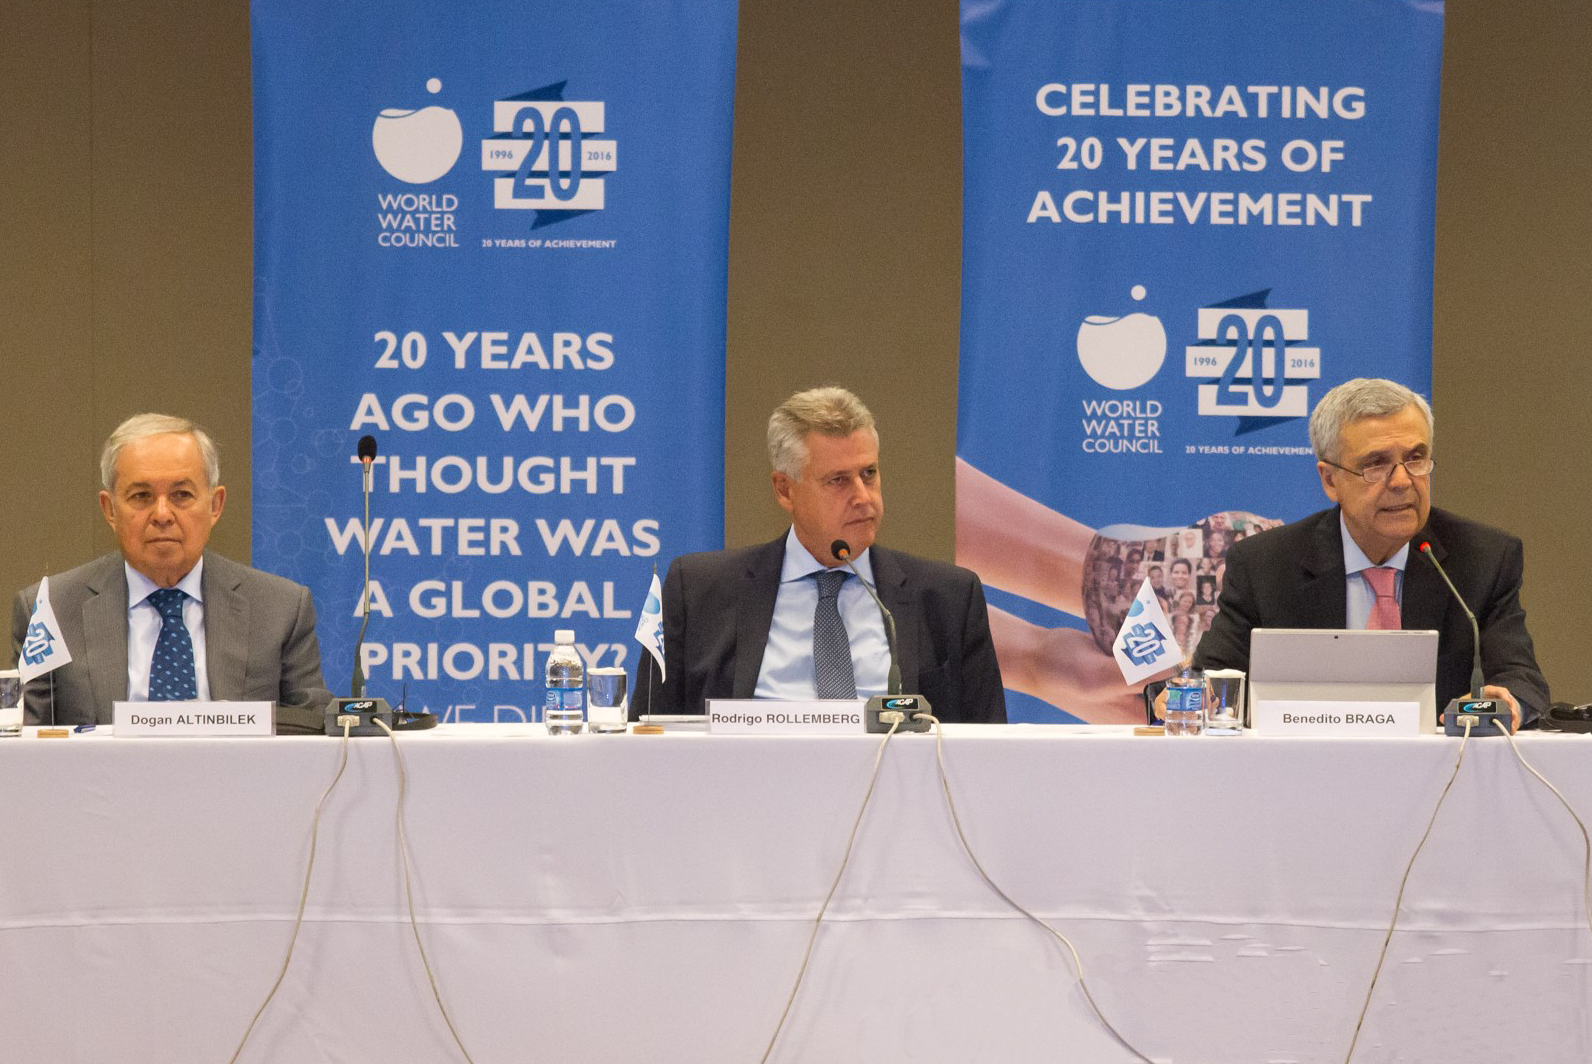 From left to right: Dogan Altinbilek, Vice President of the World Water Council, Senator Rodrigo Rollemberg, Federal District Governor, and Benedito Braga, President of the World Water Council, at the 59th Board of Governors meeting, 24 June, Brasilia. Photo: @IsraelLima